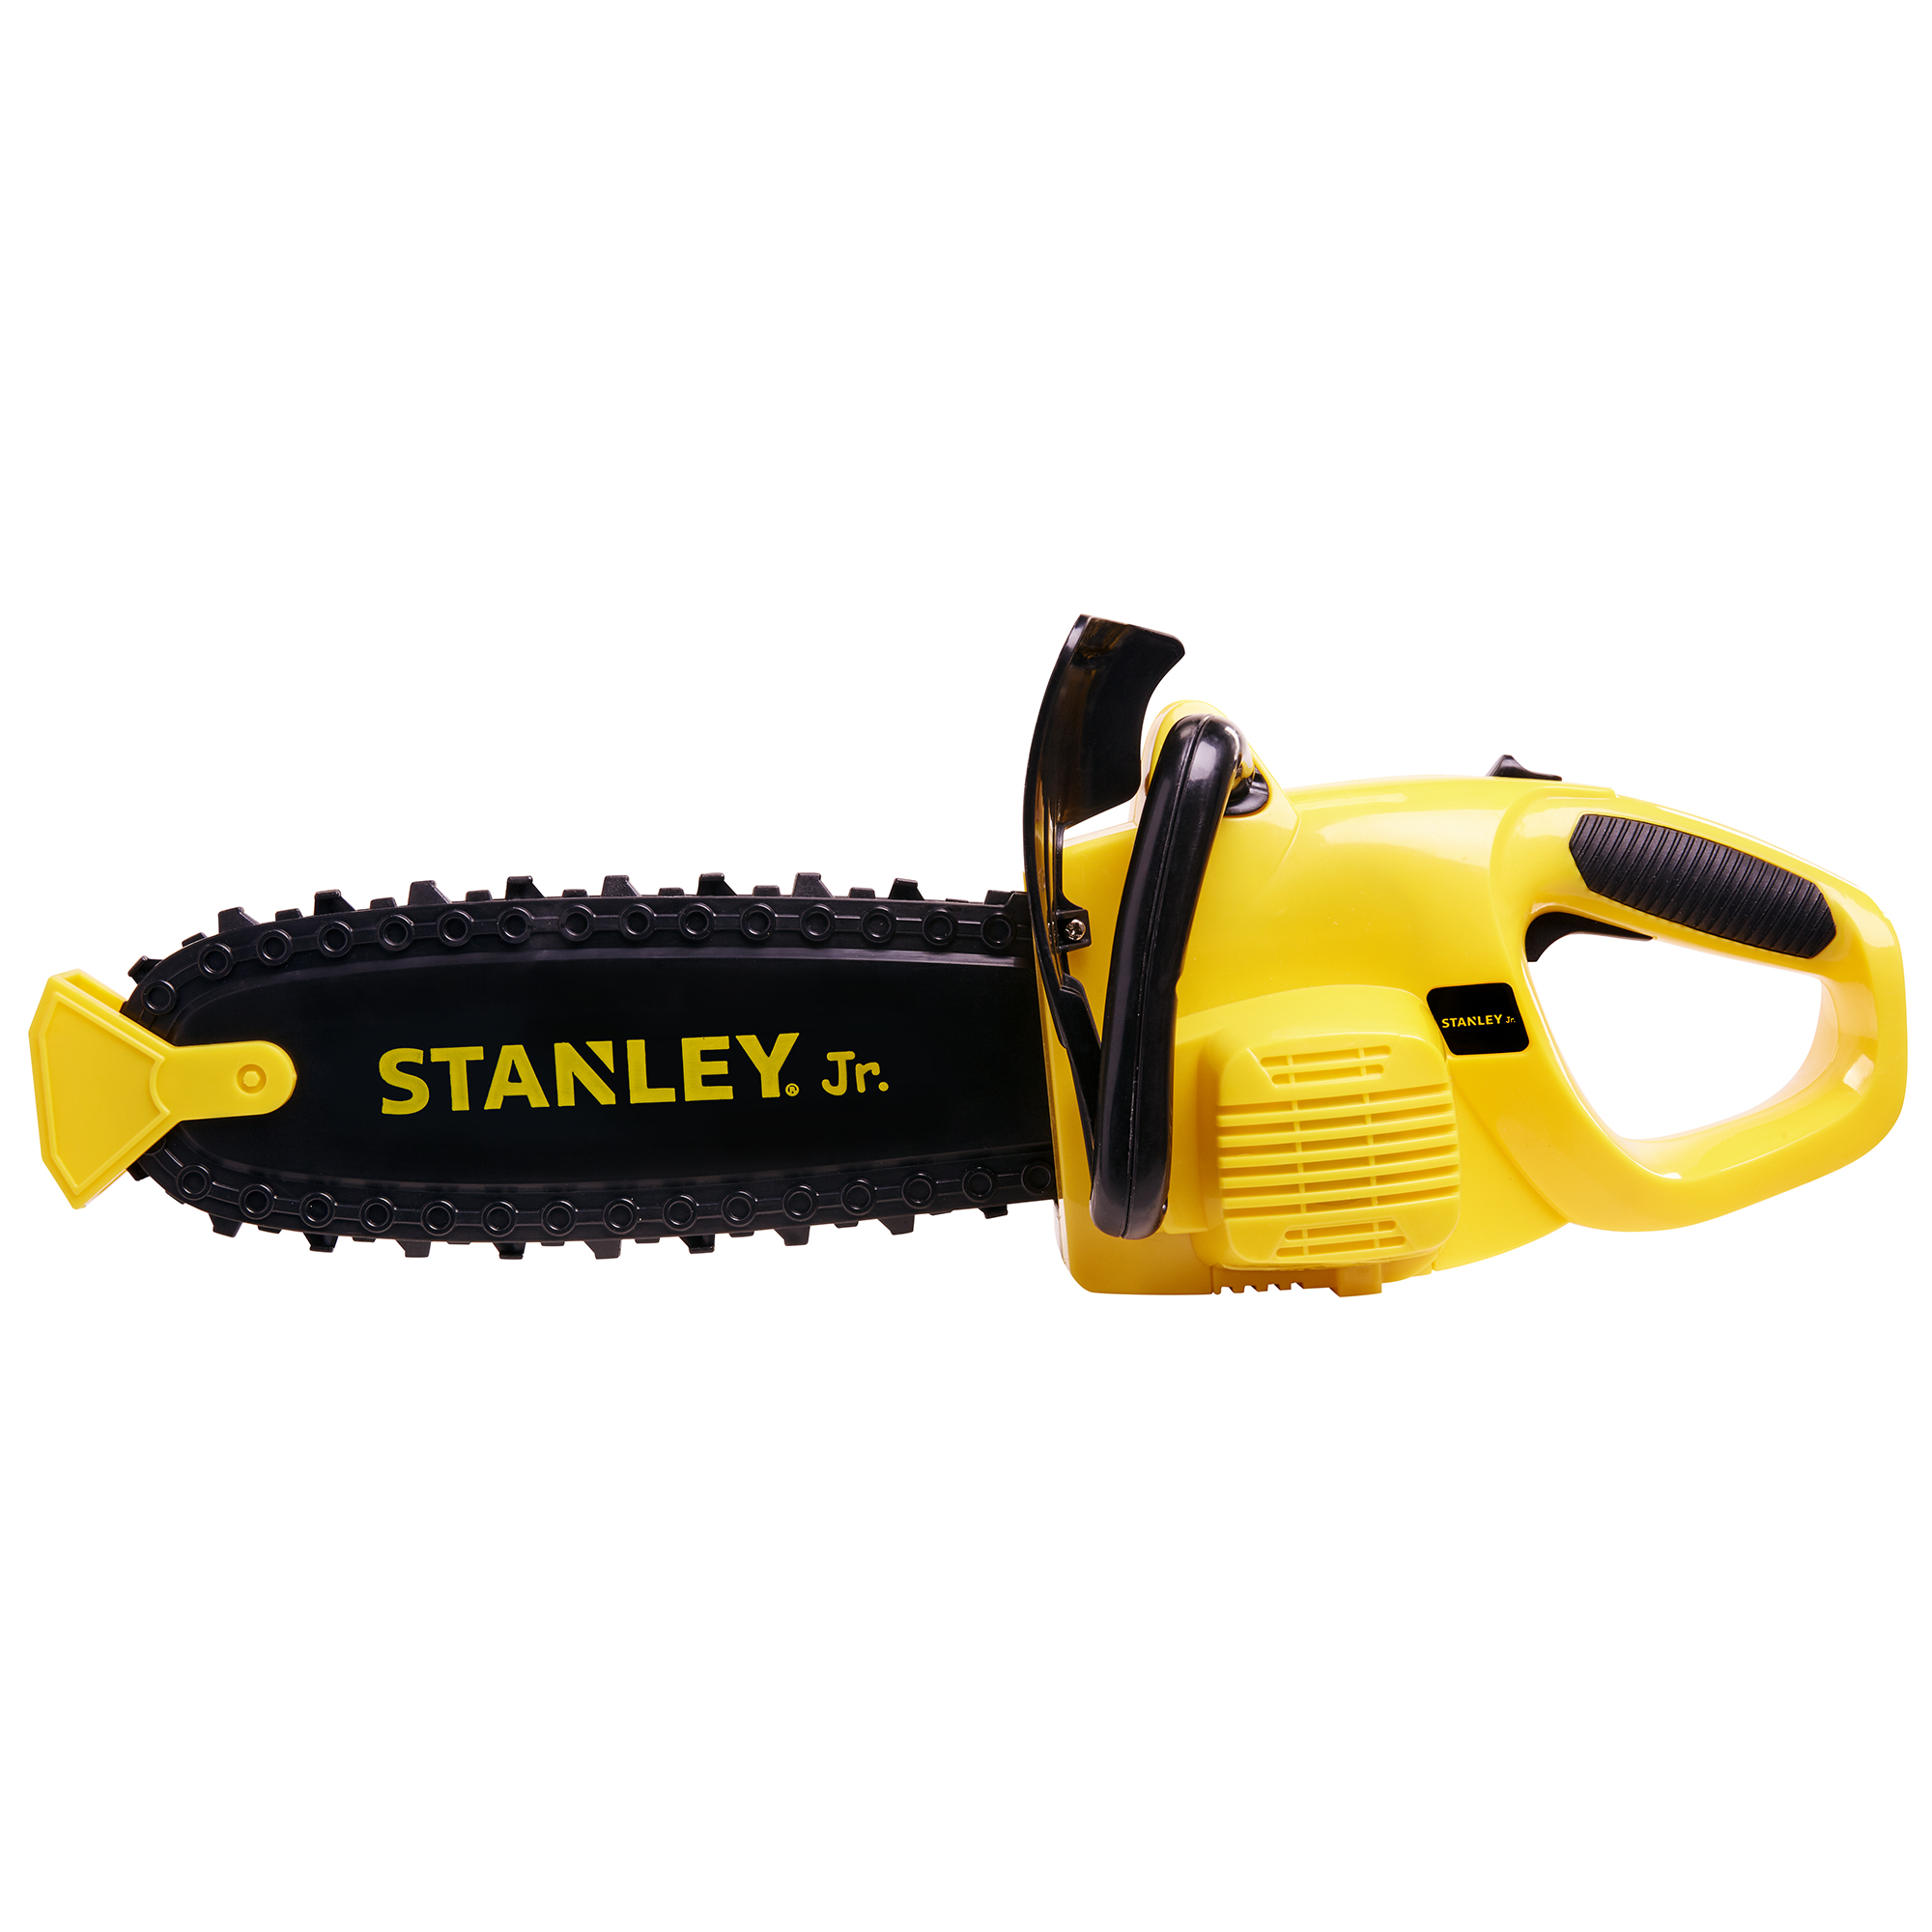 Stanley Jr. Toy Chainsaw